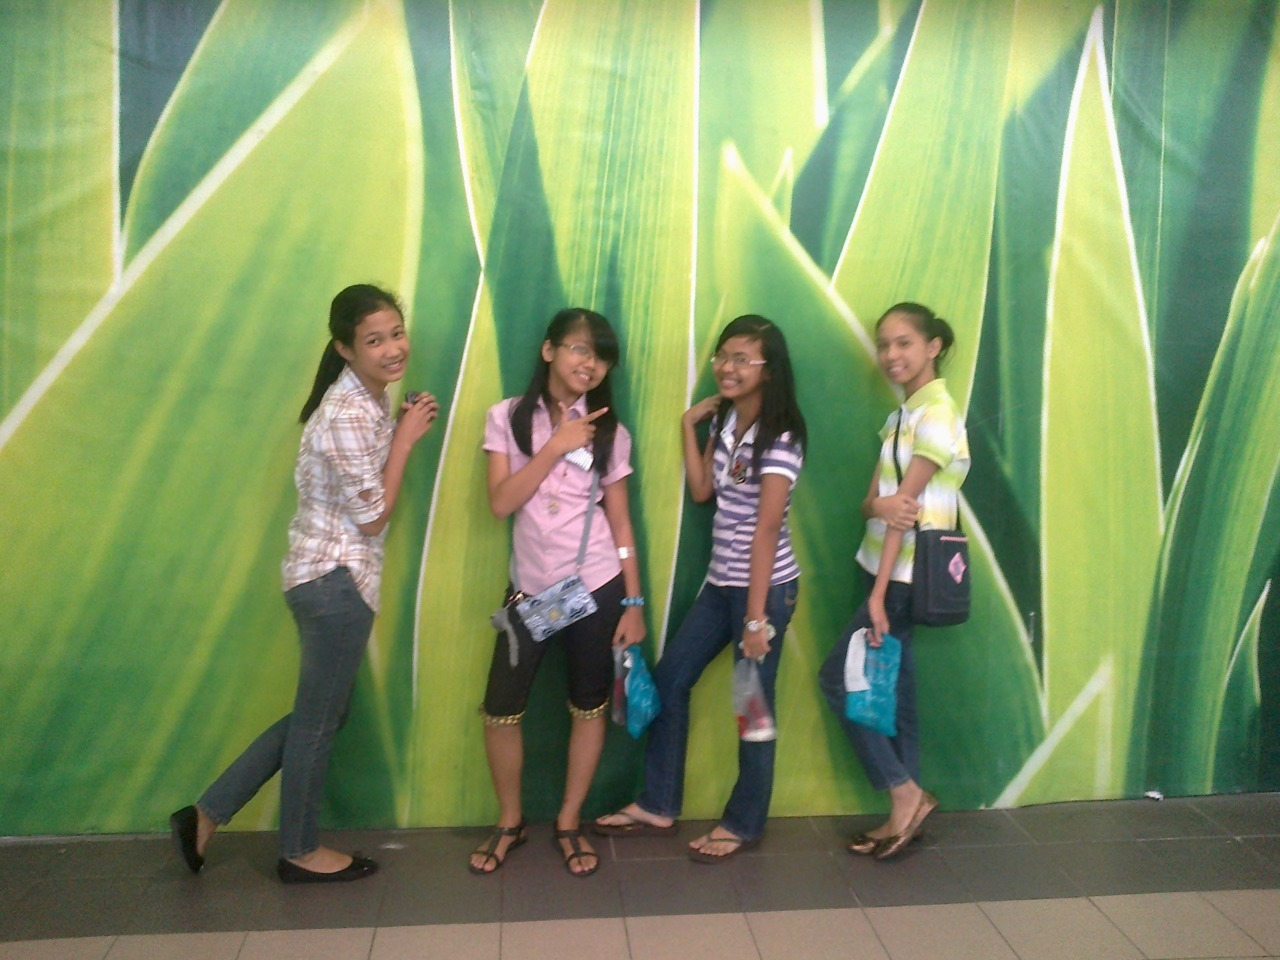 . . . at SM MARILAO  with my friends…